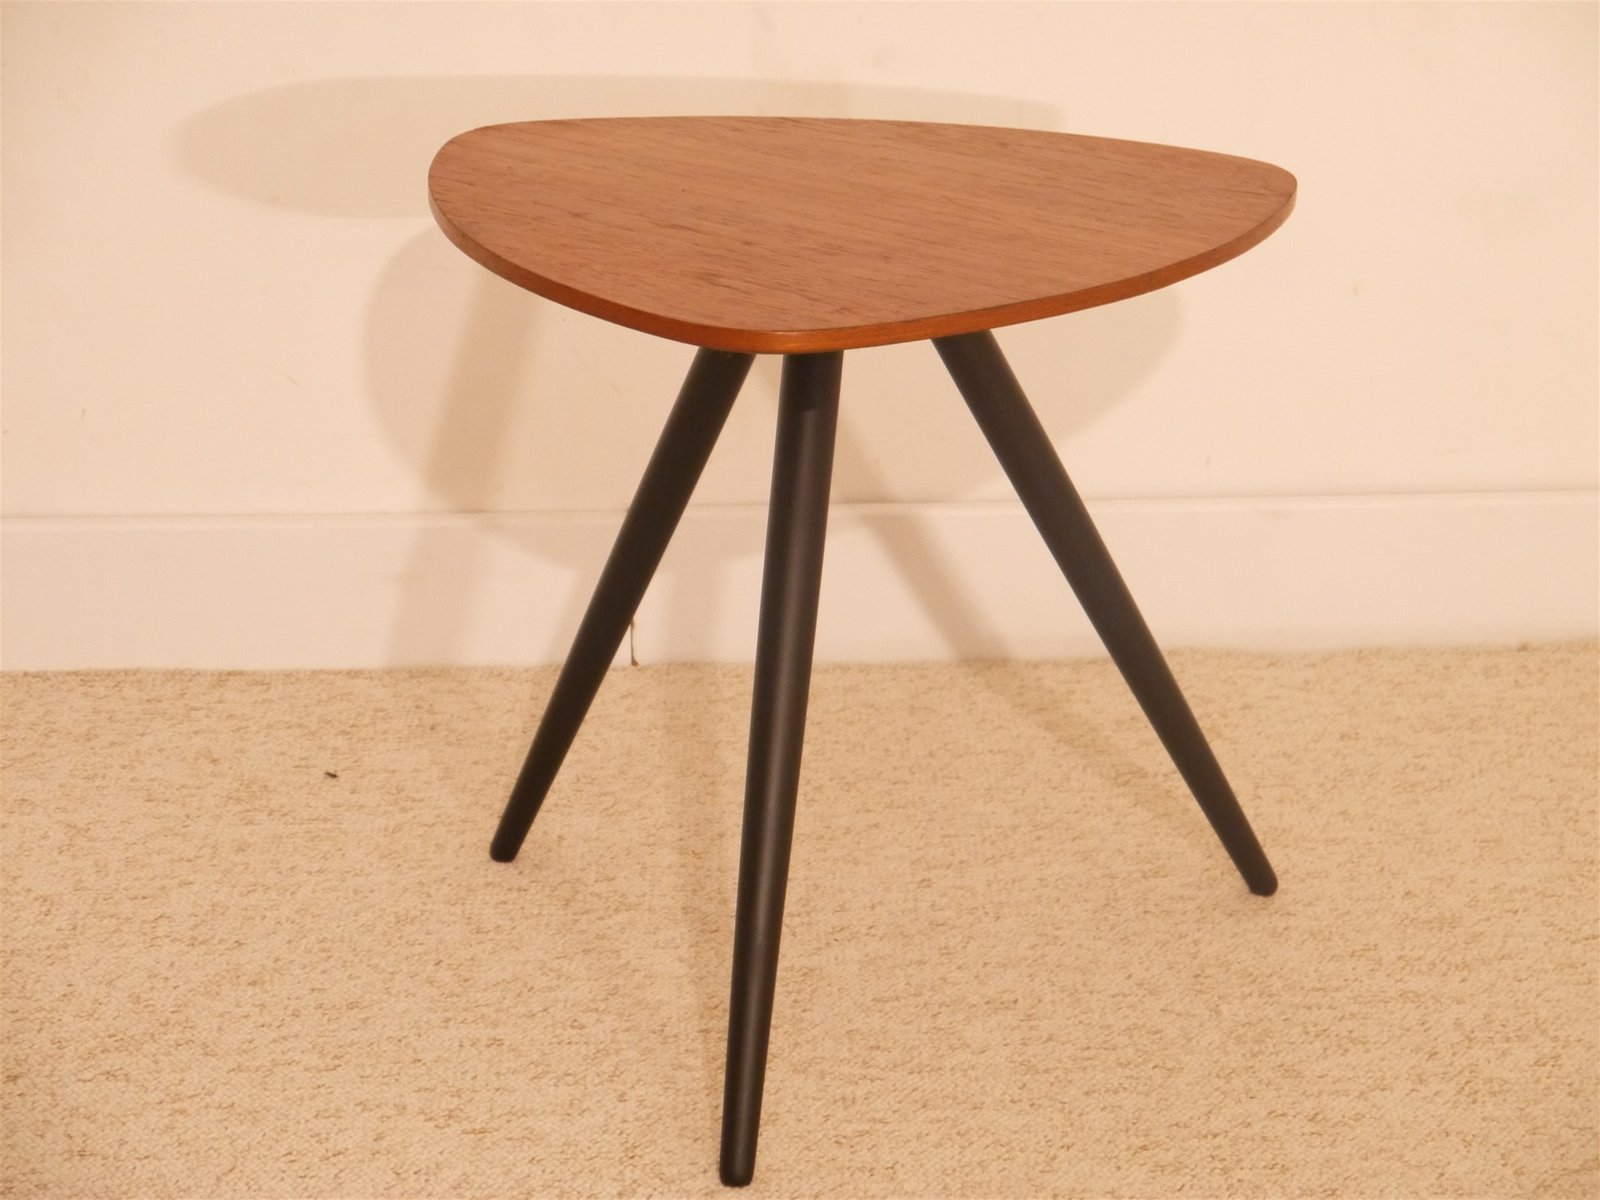 vintage scandinavian tripod side table in teak for sale at pamono. Black Bedroom Furniture Sets. Home Design Ideas